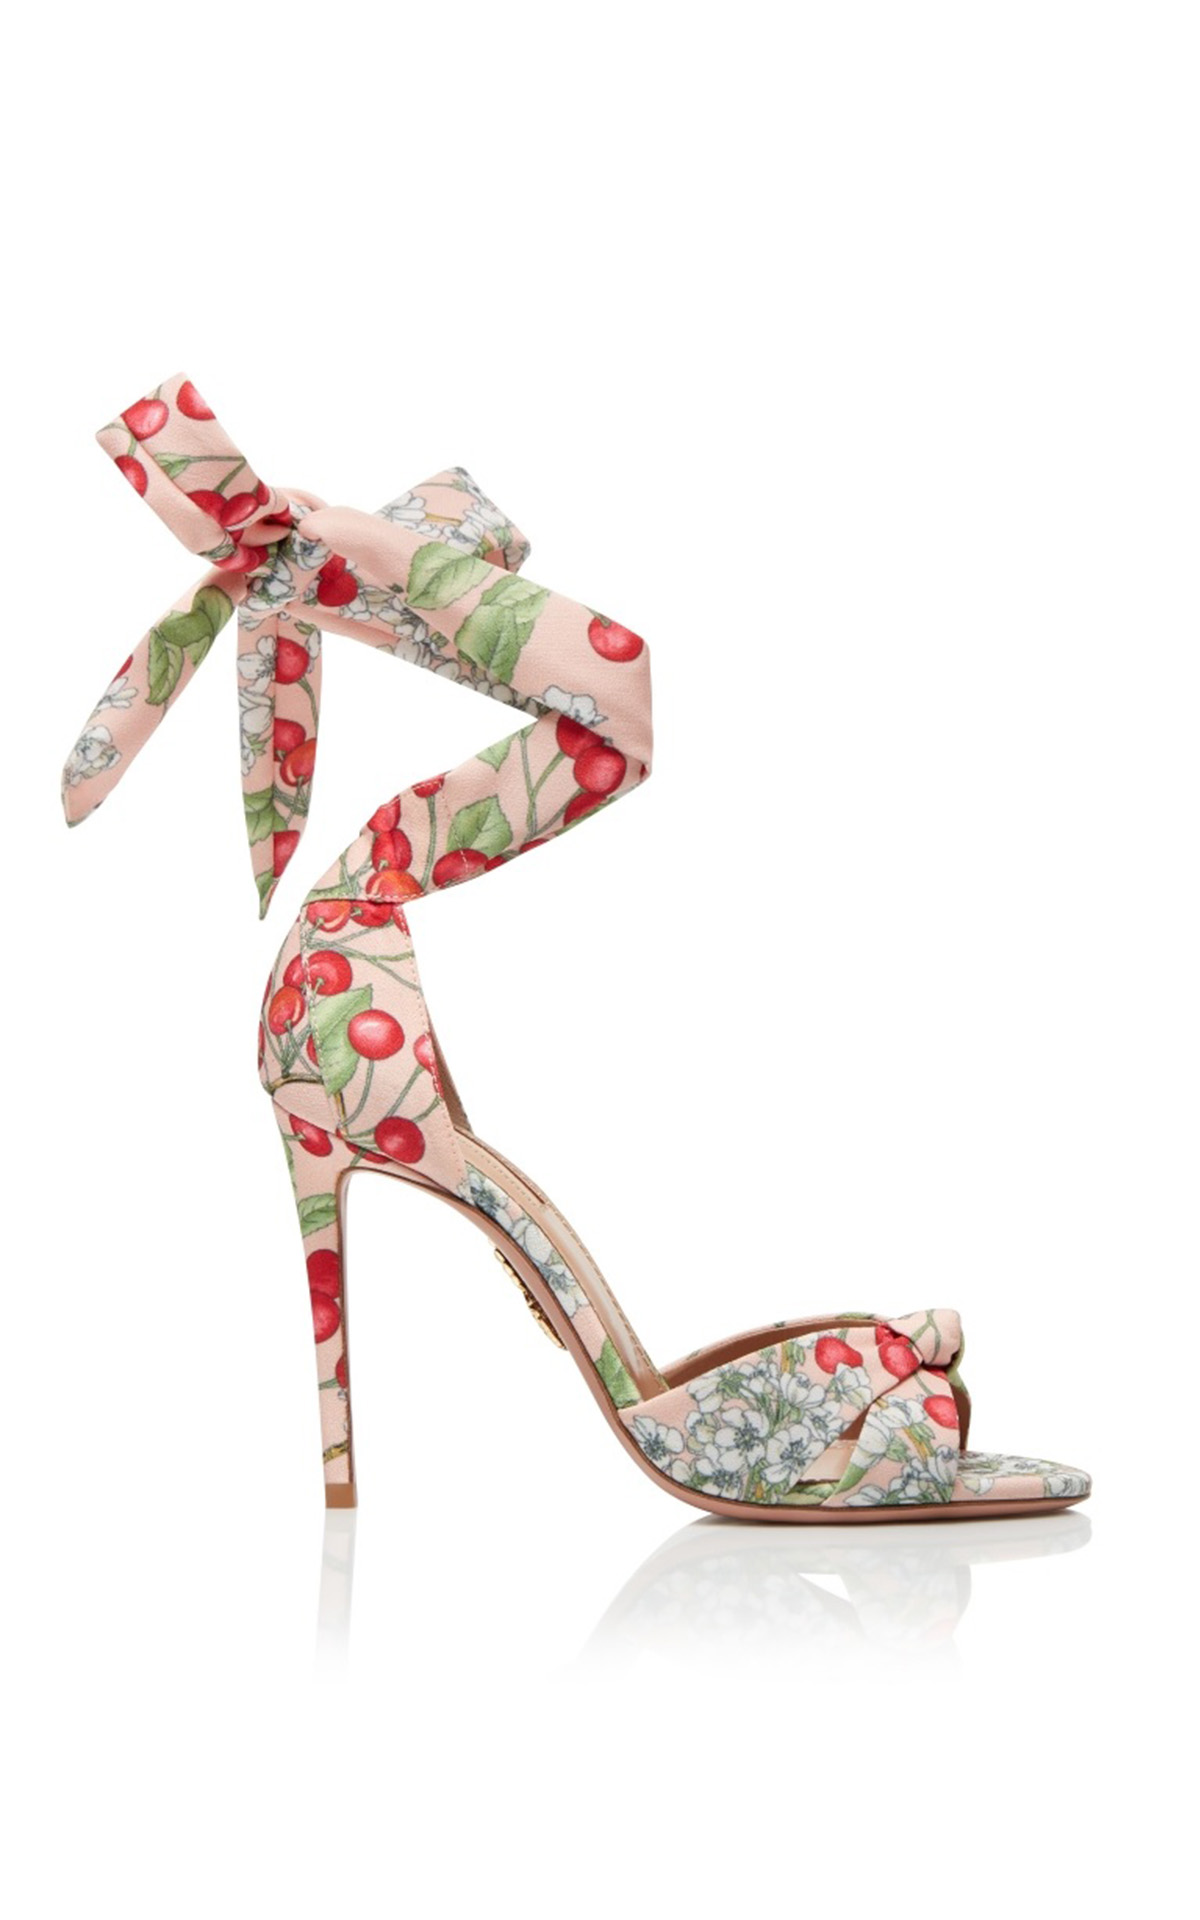 Aquazzura All tied up sandal 105 jaipur pink from Bicester Village